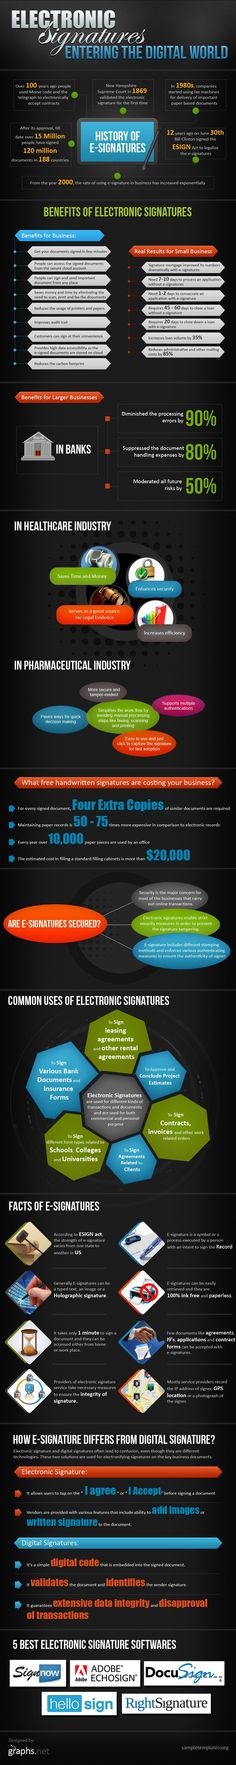 50+ Advantages of Using Electronic Signatures #infographic #security